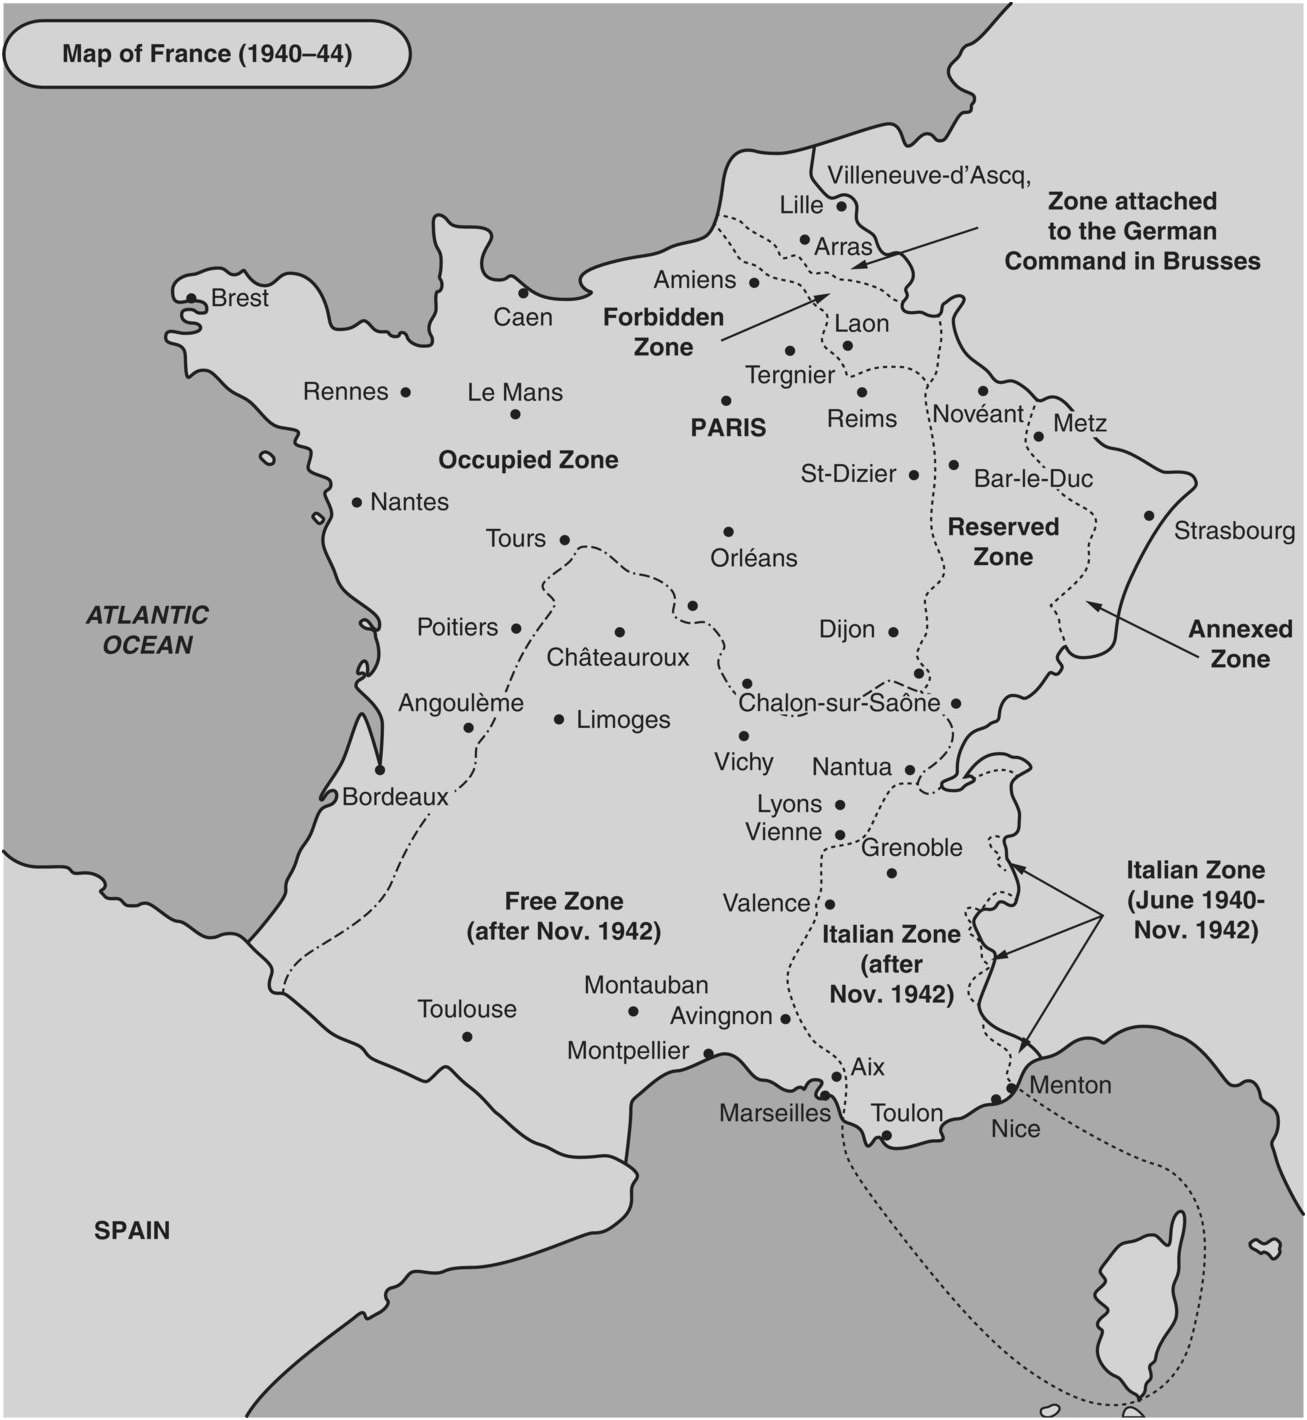 Montpellier On Map Of France.Maps Ordinary Workers Vichy And The Holocaust